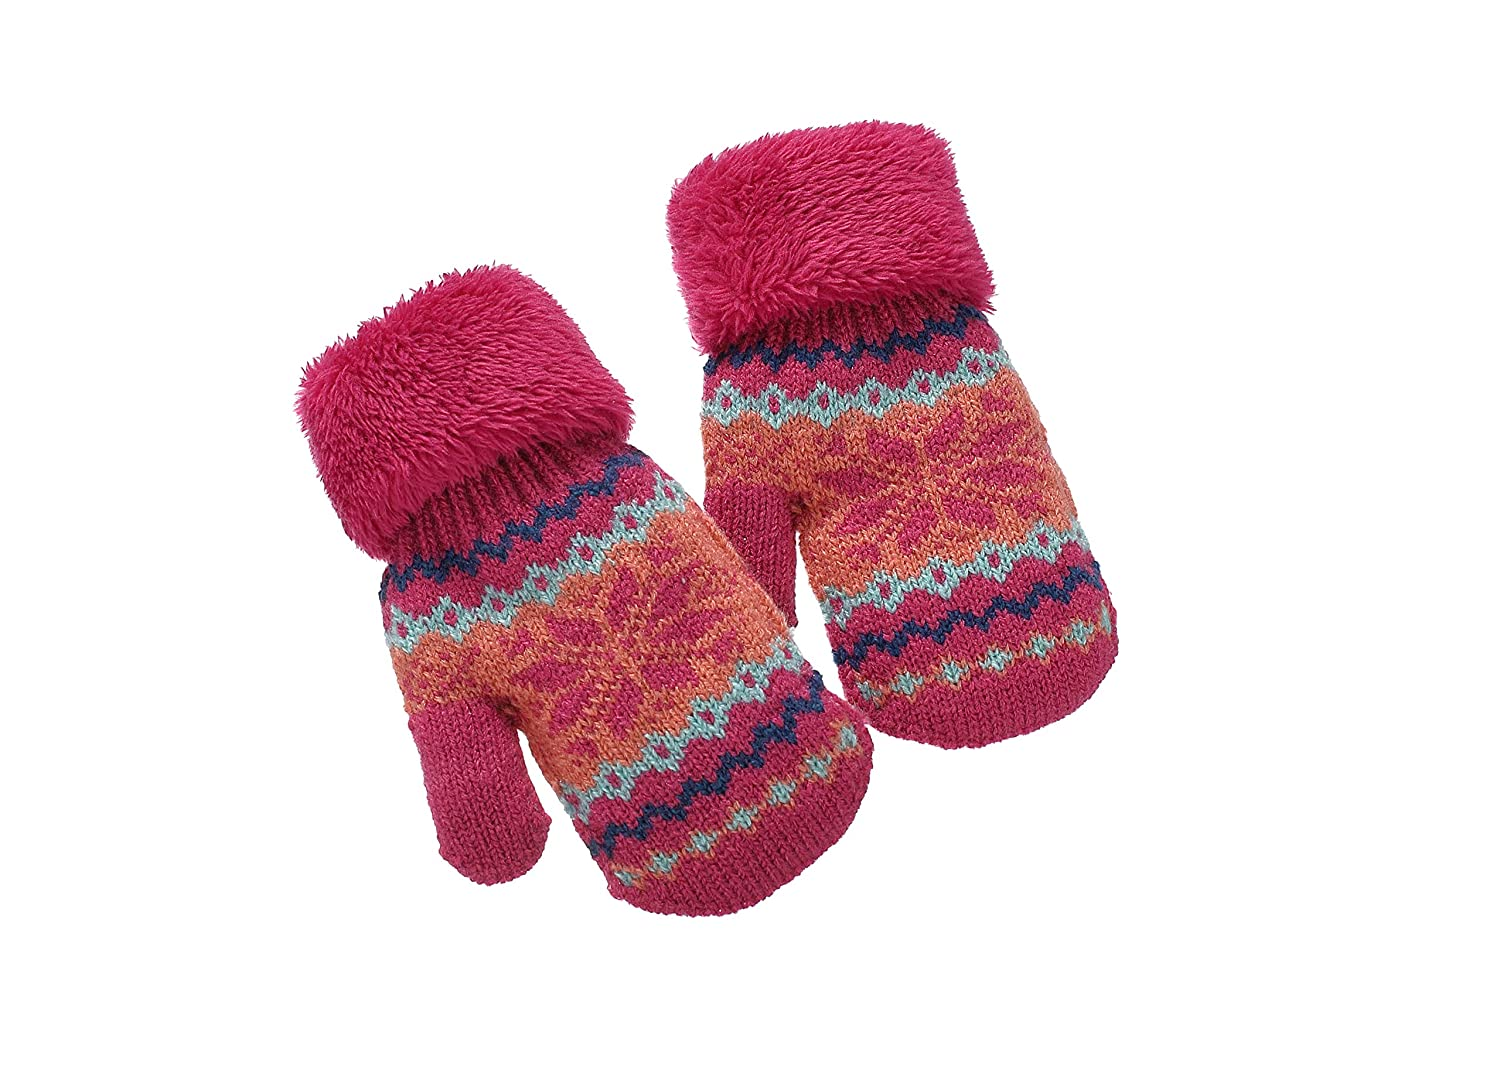 Toddler Baby Boy Girls Warm Winter Mittens With Fleece Lining Age 2345